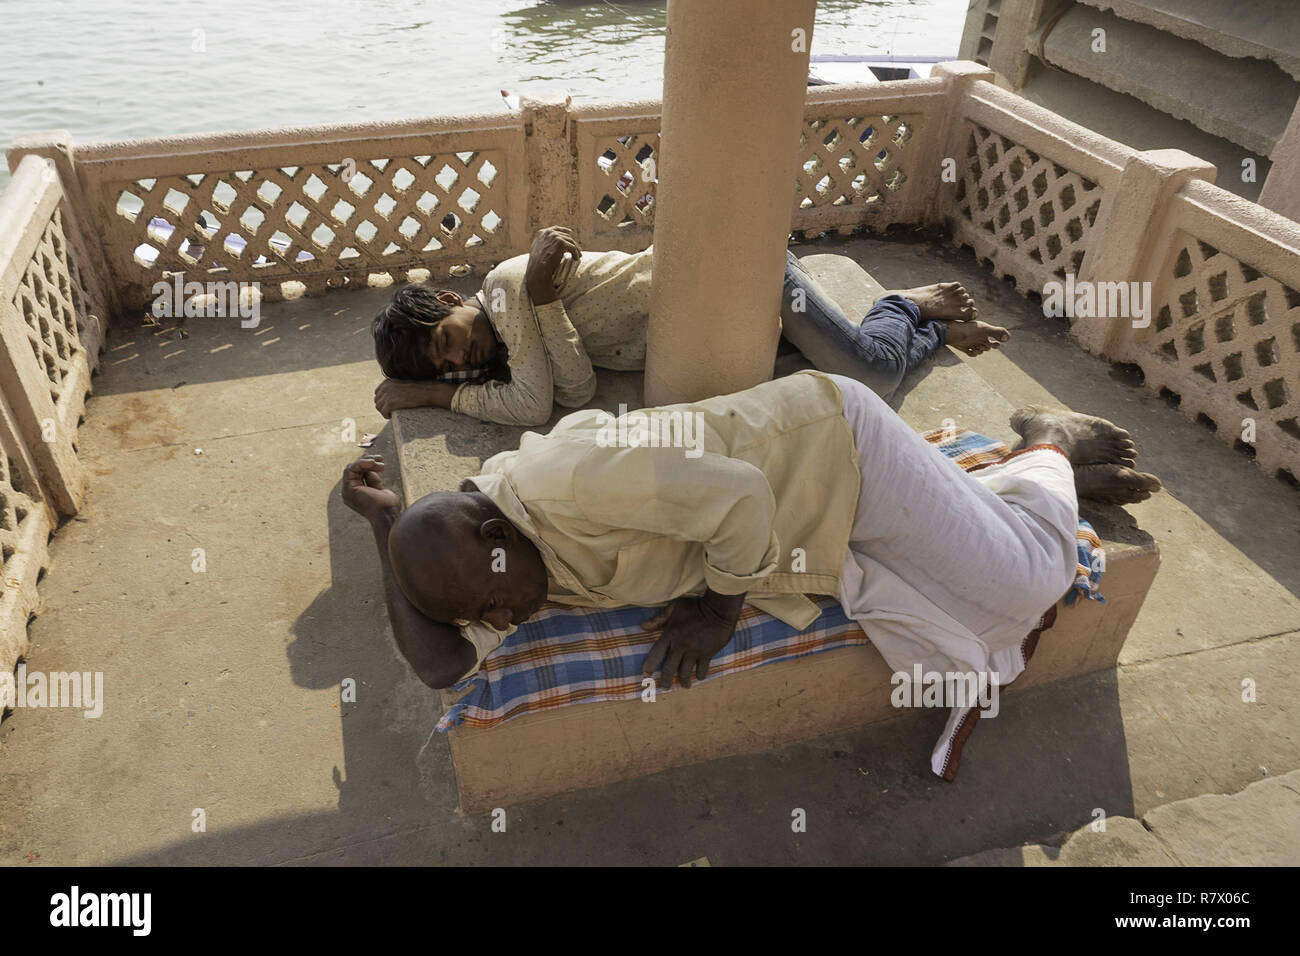 July 23, 2018 - Varanasi, Uttar Pradesh, India - Men are seen resting on the banks of the Ganges river in Varanasi..Varanasi is a city in the northern Indian state of Uttar Pradesh dating to the 11th century B.C. Regarded as the spiritual capital of India, the city draws Hindu pilgrims who bathe in the Ganges River's sacred waters and perform funeral rites. The river is dedicated to the Hindu god Shiva. (Credit Image: © Enzo Tomasiello/SOPA Images via ZUMA Wire) Stock Photo